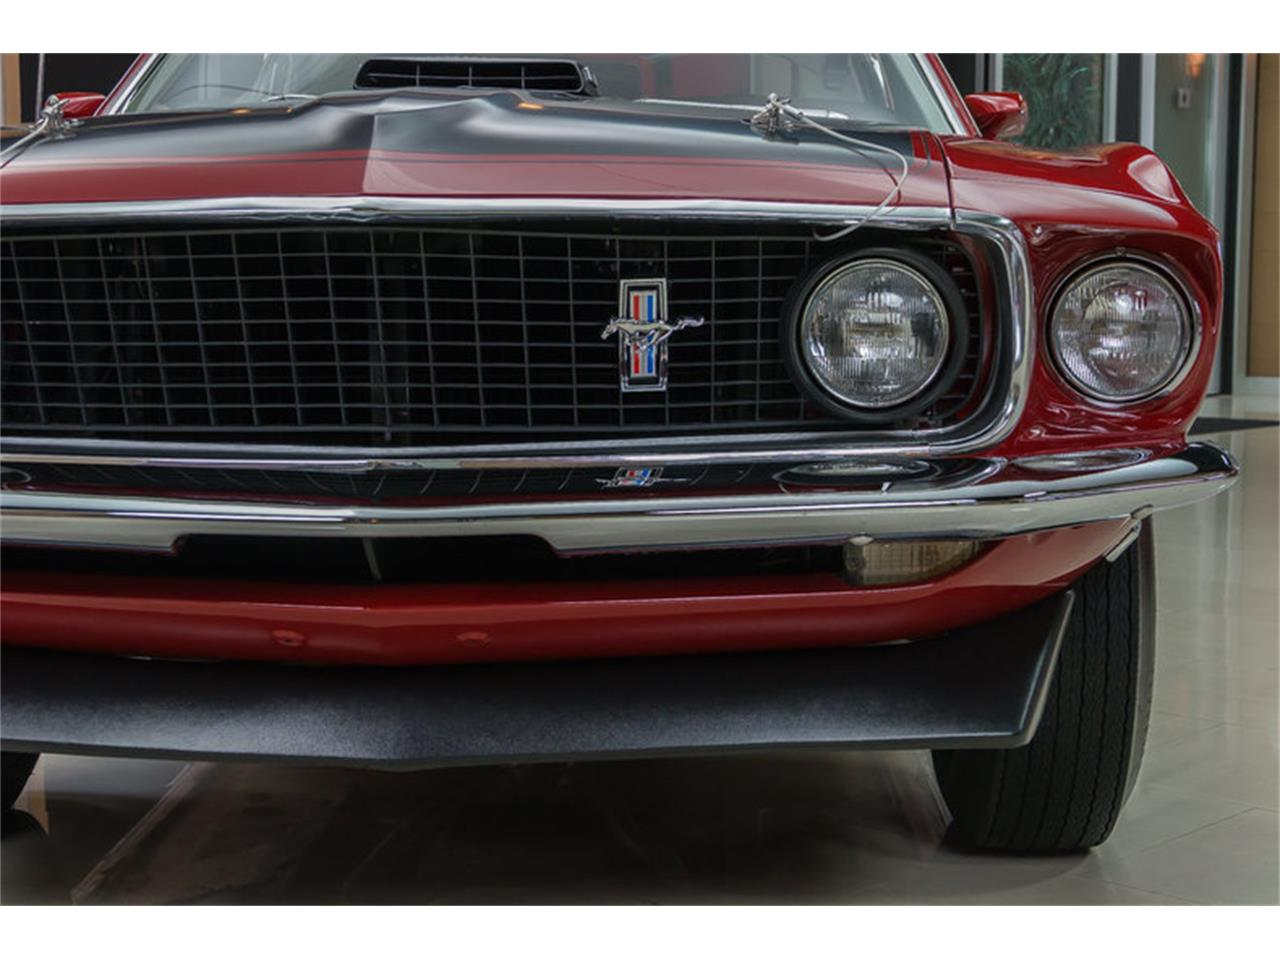 Large Picture of Classic '69 Ford Mustang Mach 1 S Code - $59,900.00 - IS3G